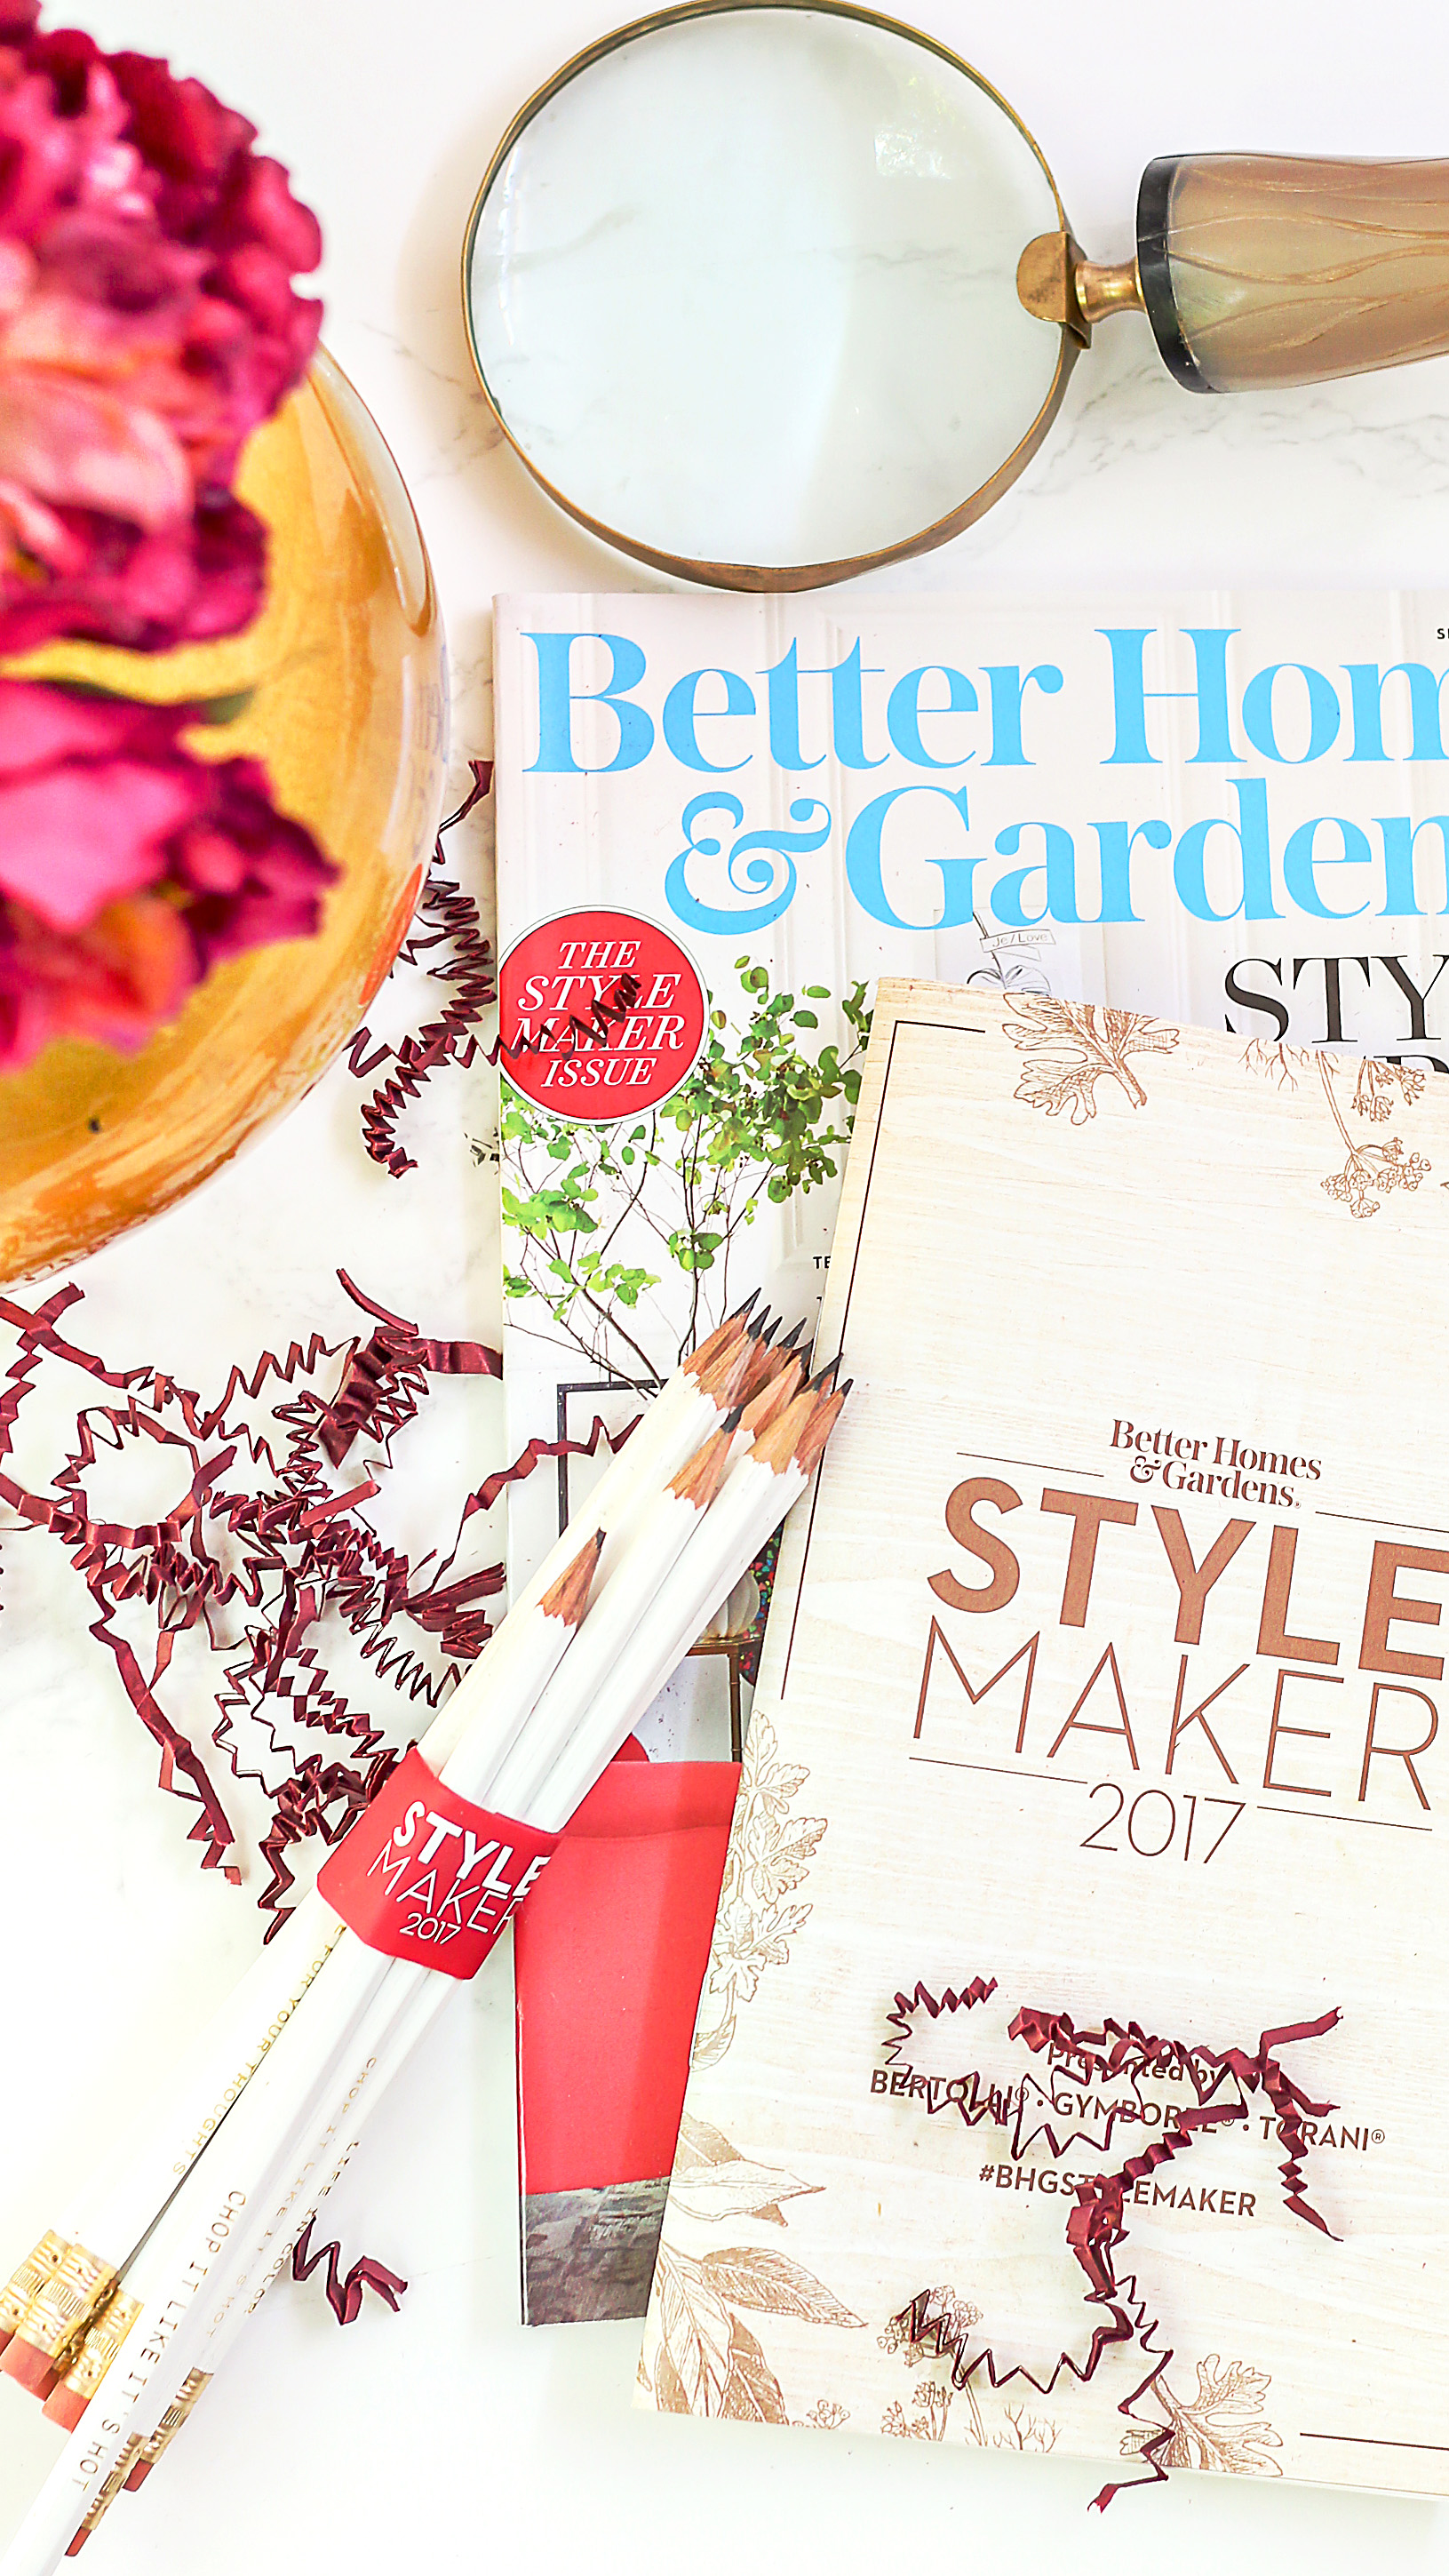 Better Homes And Gardens Stylemaker 2017 Recap